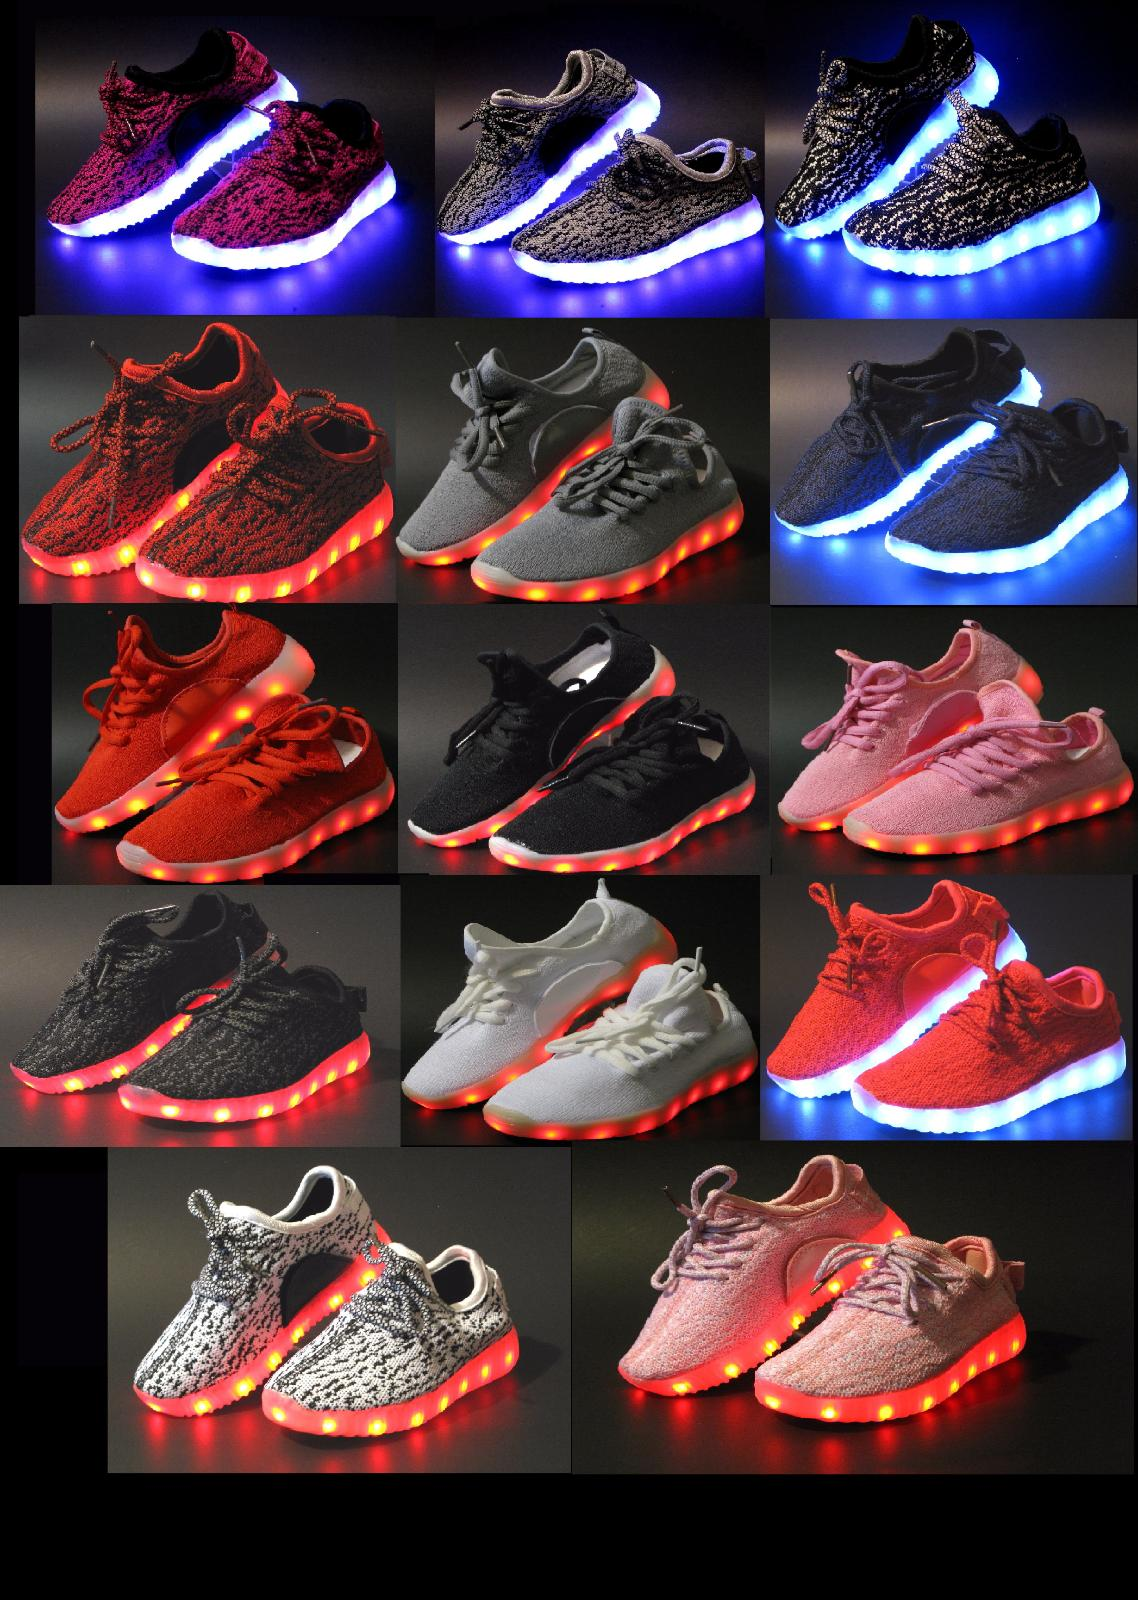 Unisex Light Up LED Shoes For Baby Toddler And Sneakers